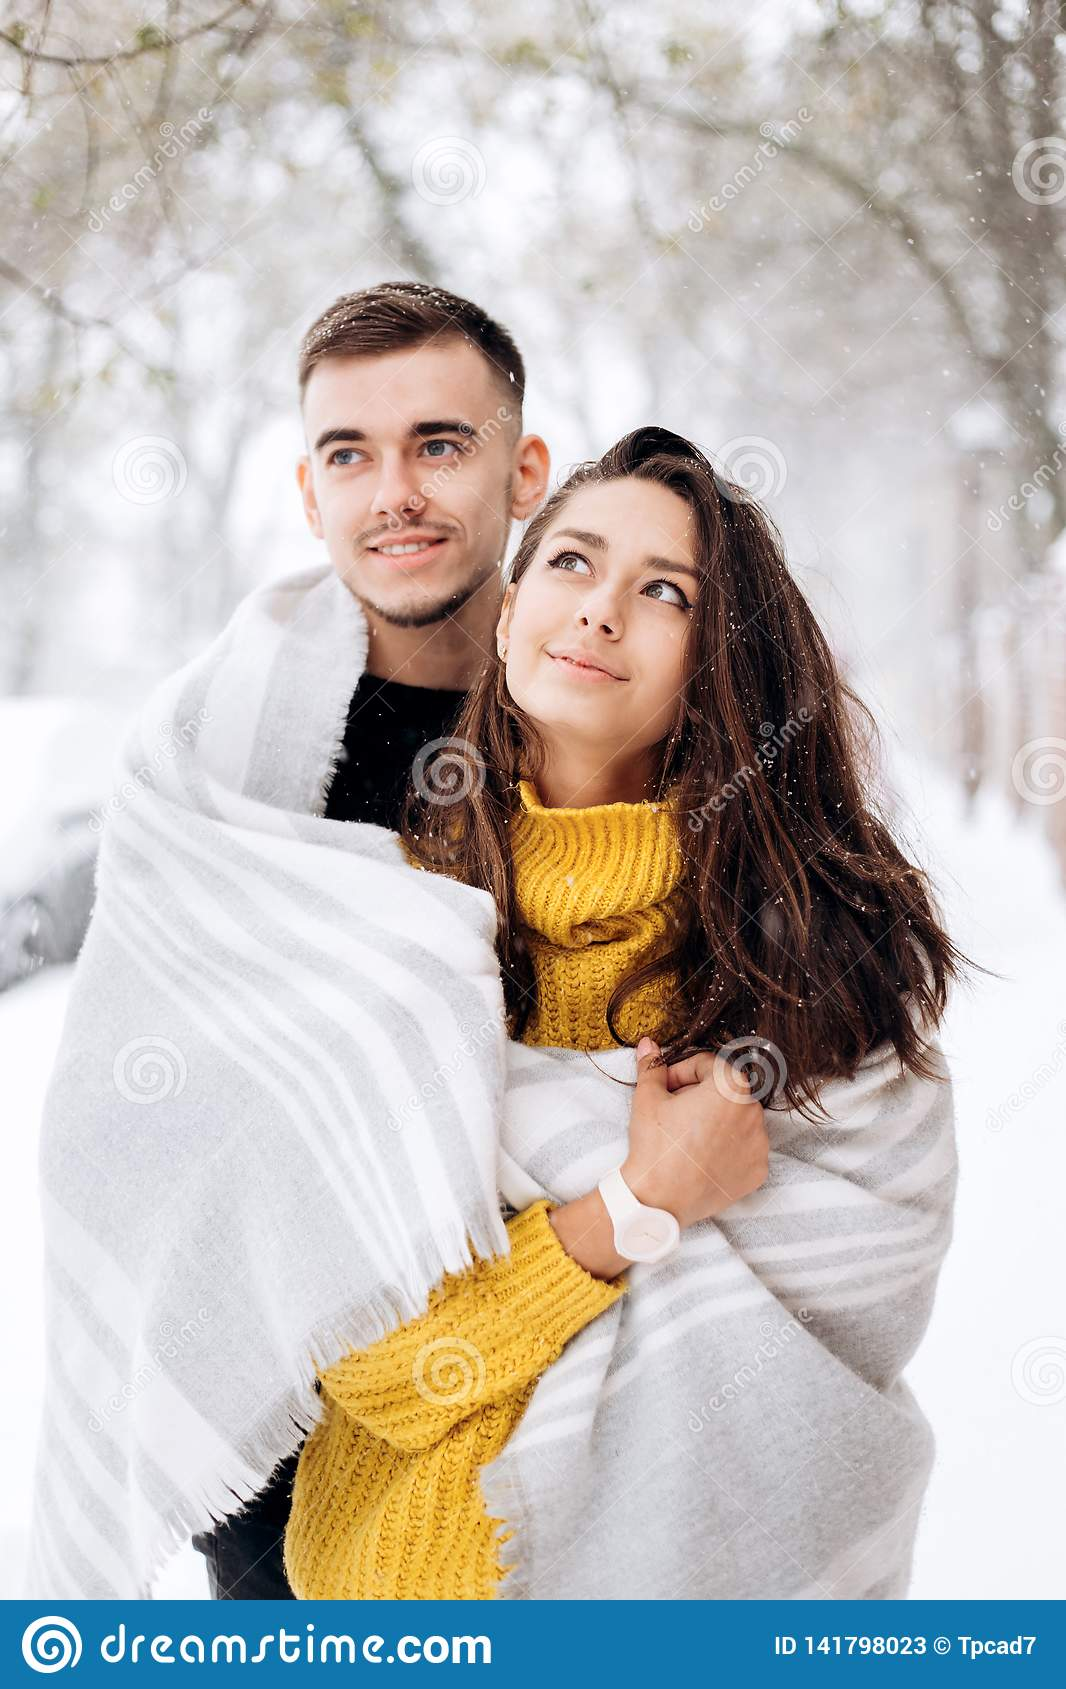 Charming dark-haired girl dressed in a yellow sweater and her boyfriend wrapped together in a gray scarf are standing in